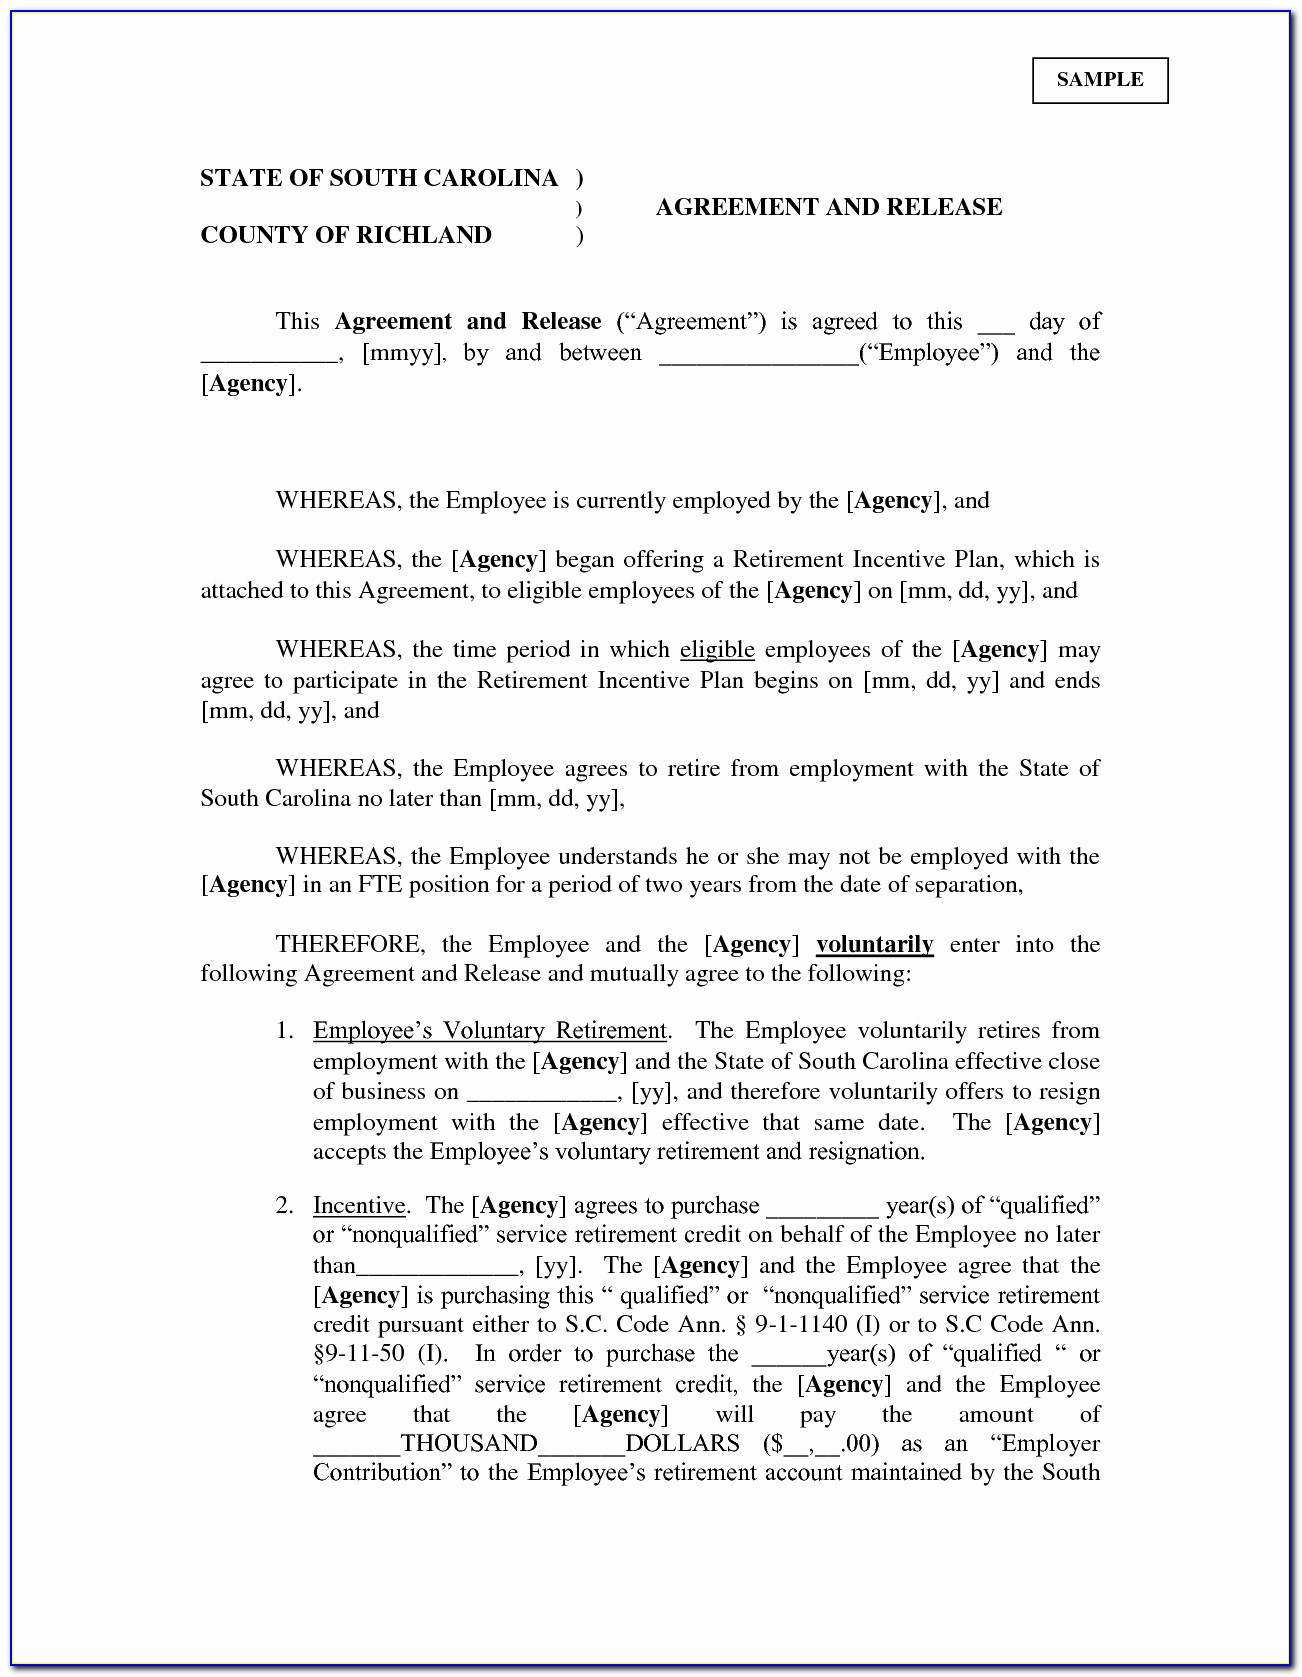 Virginia Separation Agreement Template Beautiful Virginia Separation Agreement Template Elegant Fine Qdro Template S